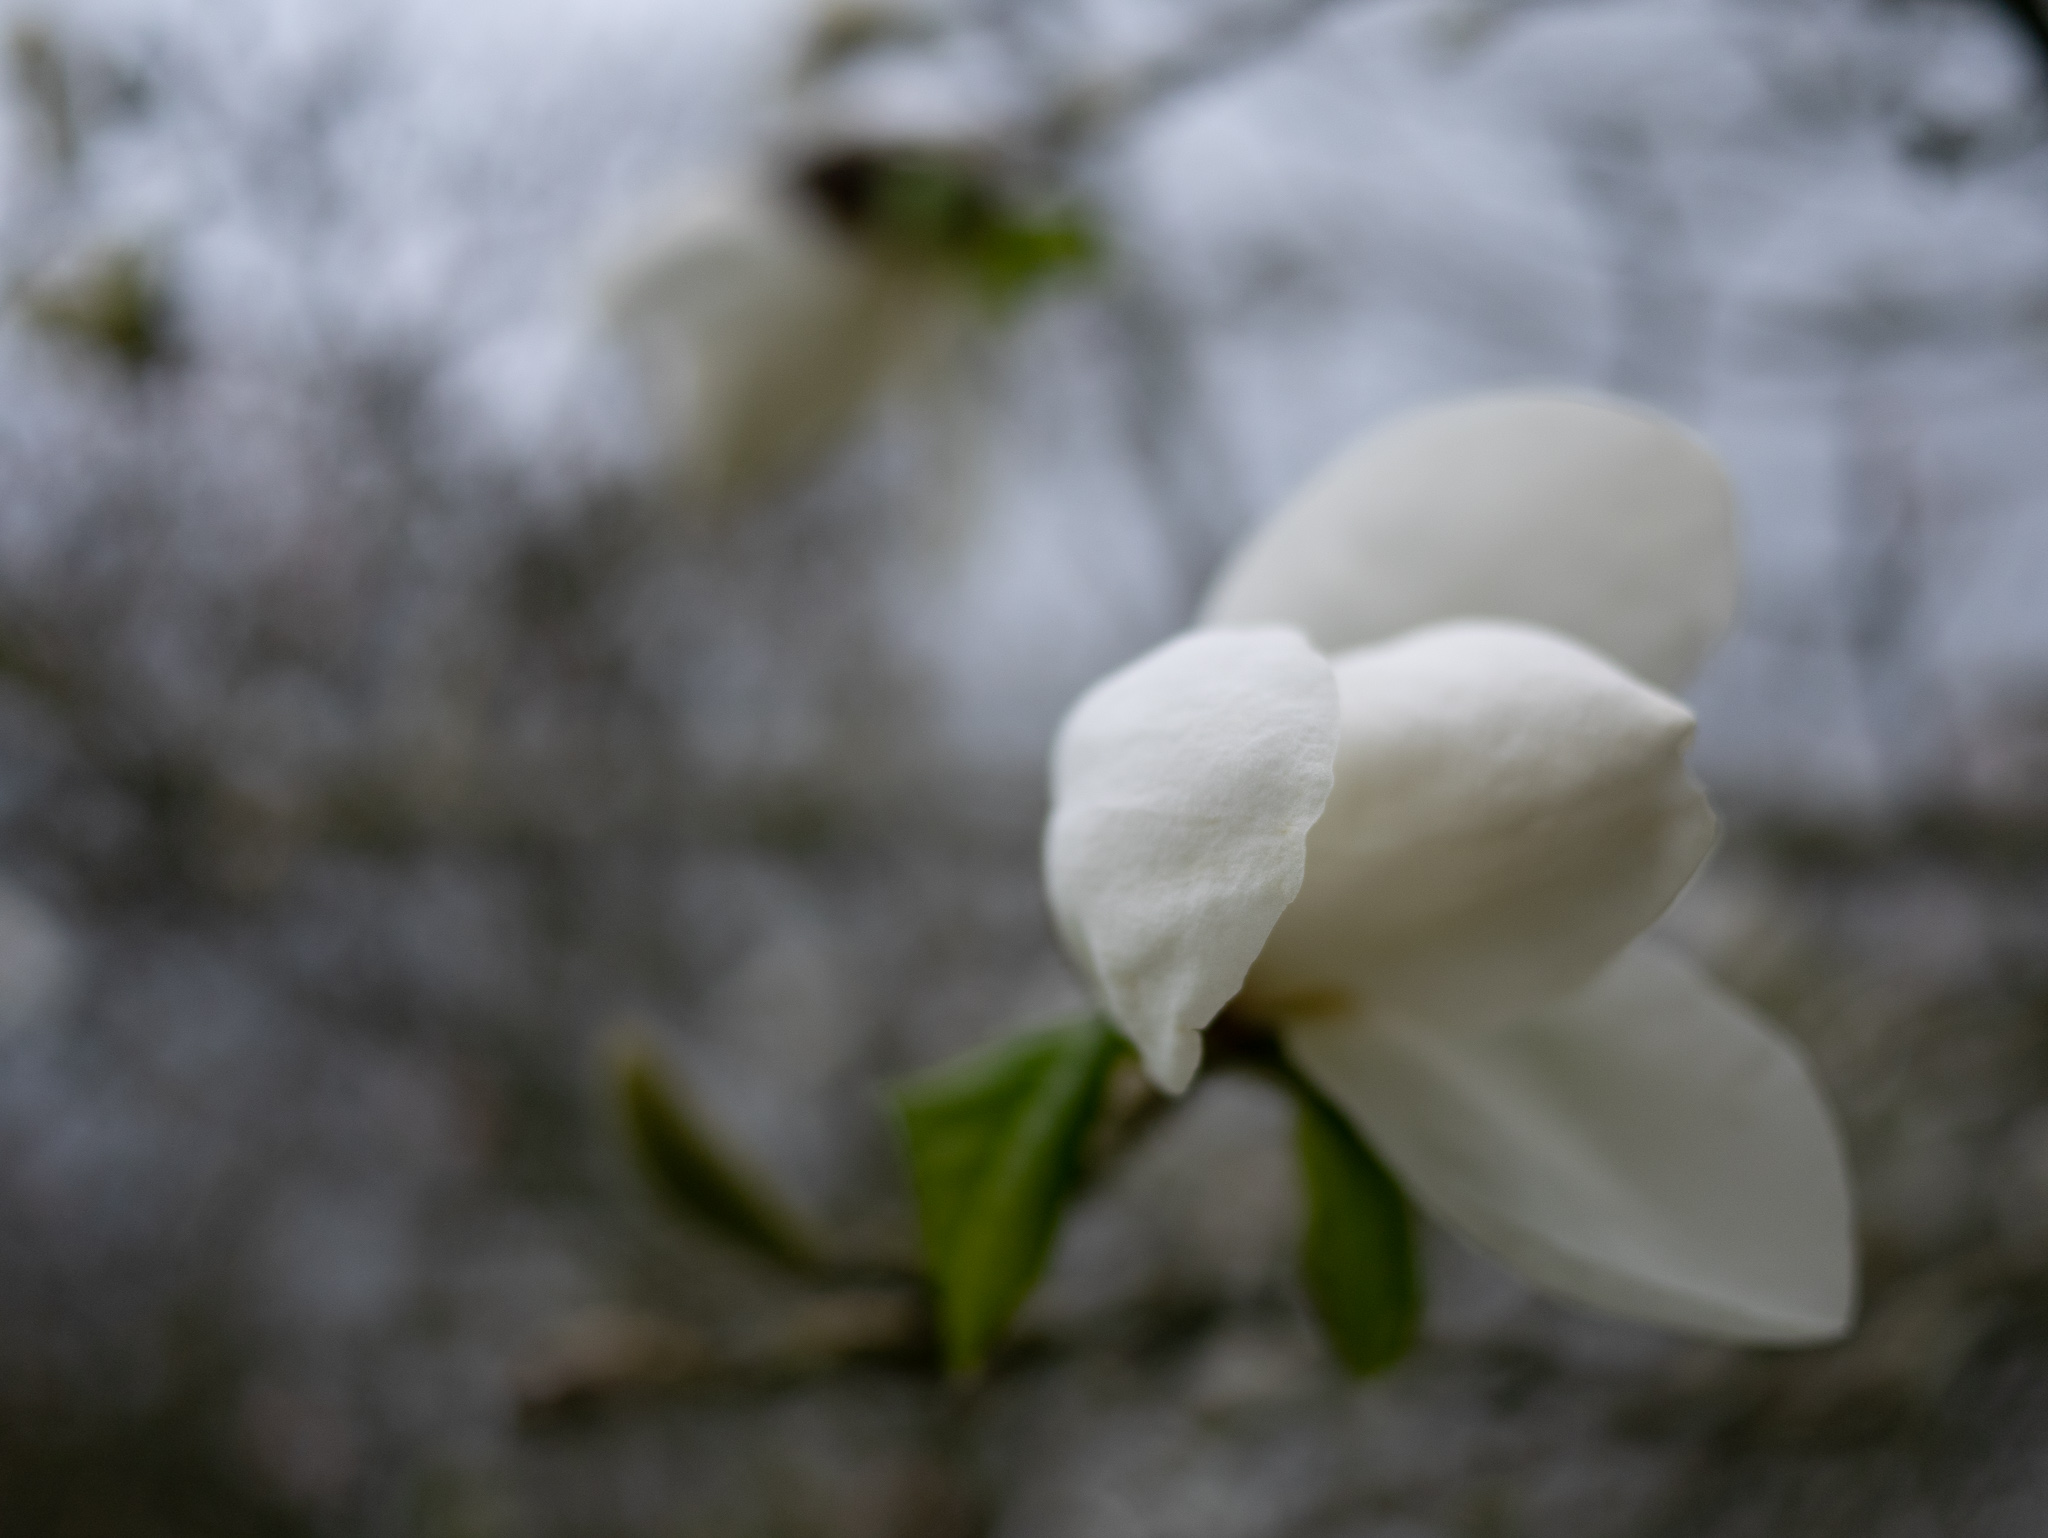 Magnolia flower bud for silence poem